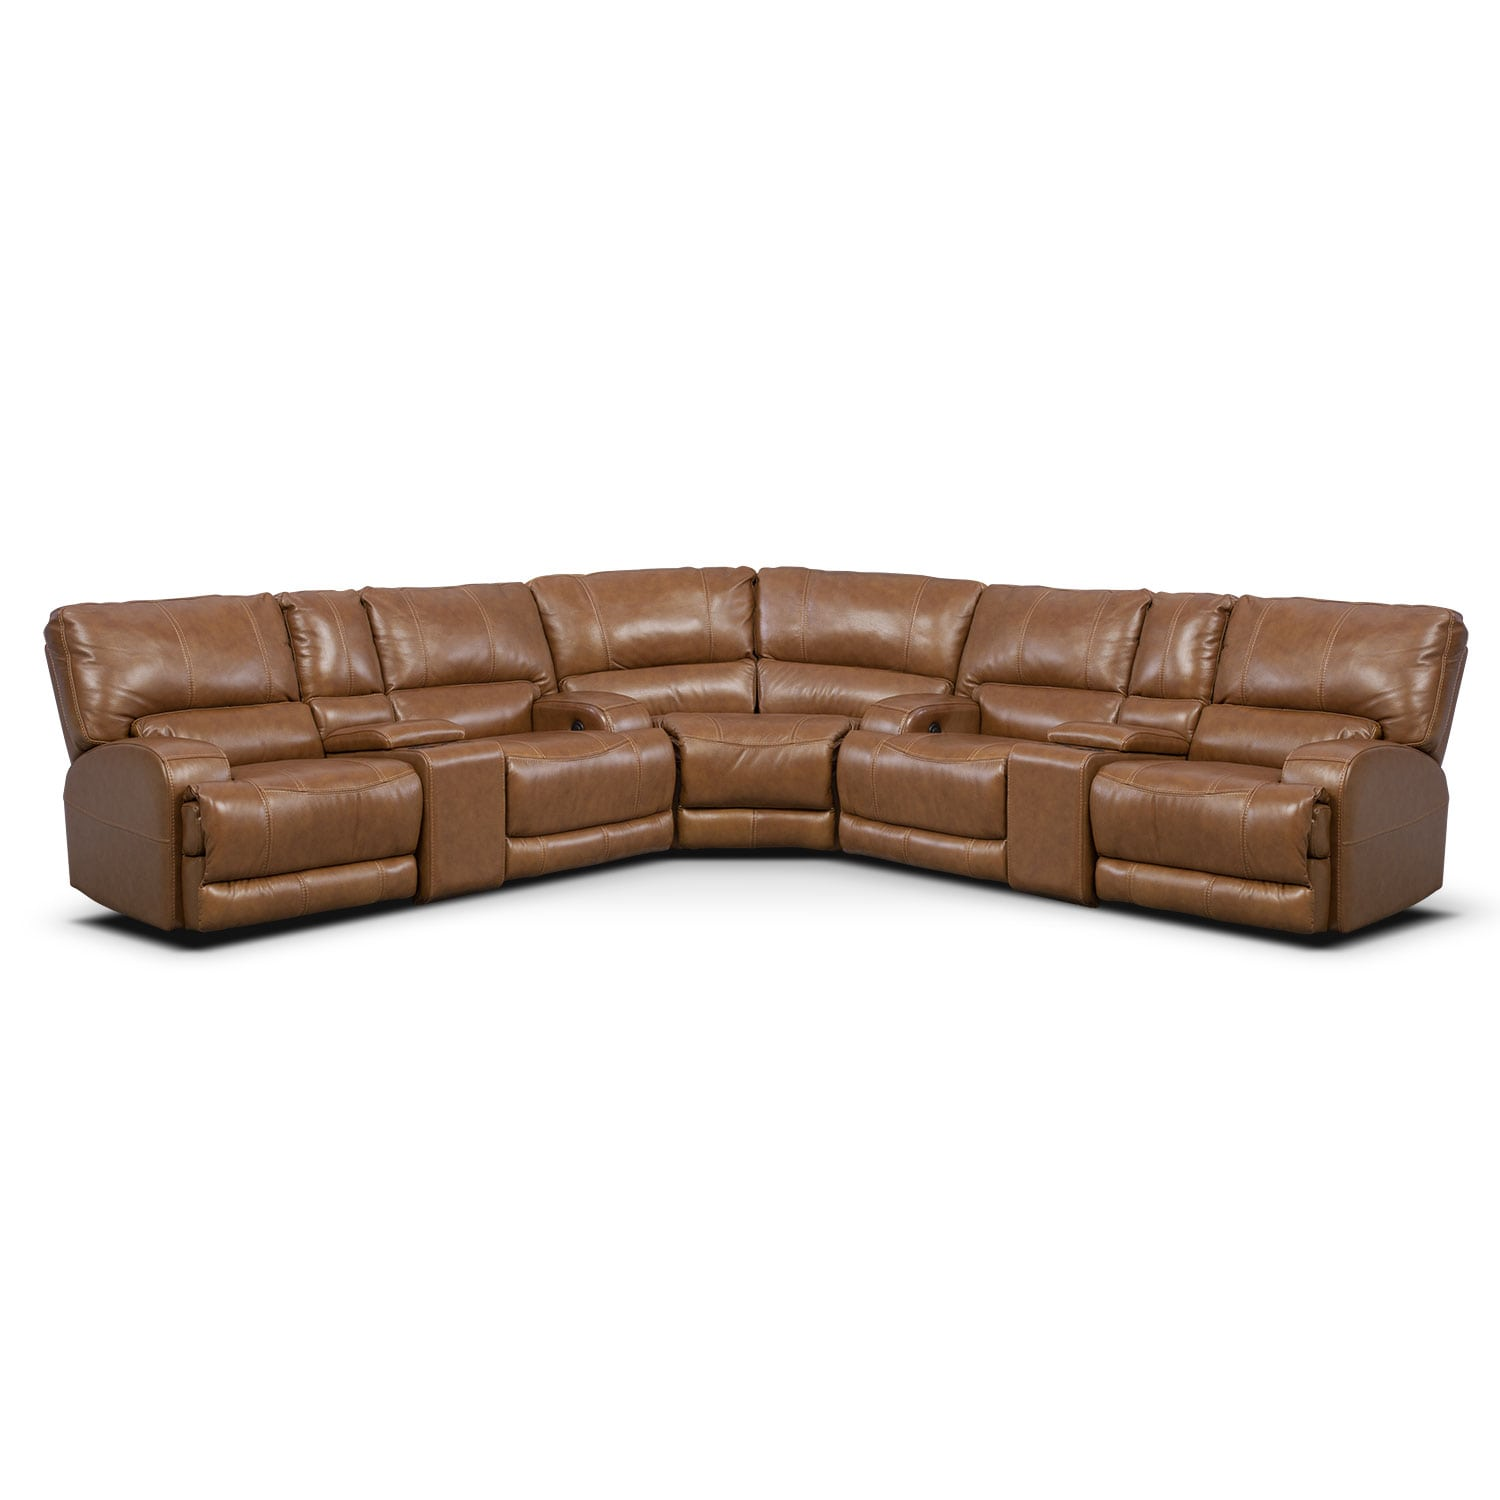 Barton 3-Piece Power Reclining Sectional with 2 Consoles - Camel